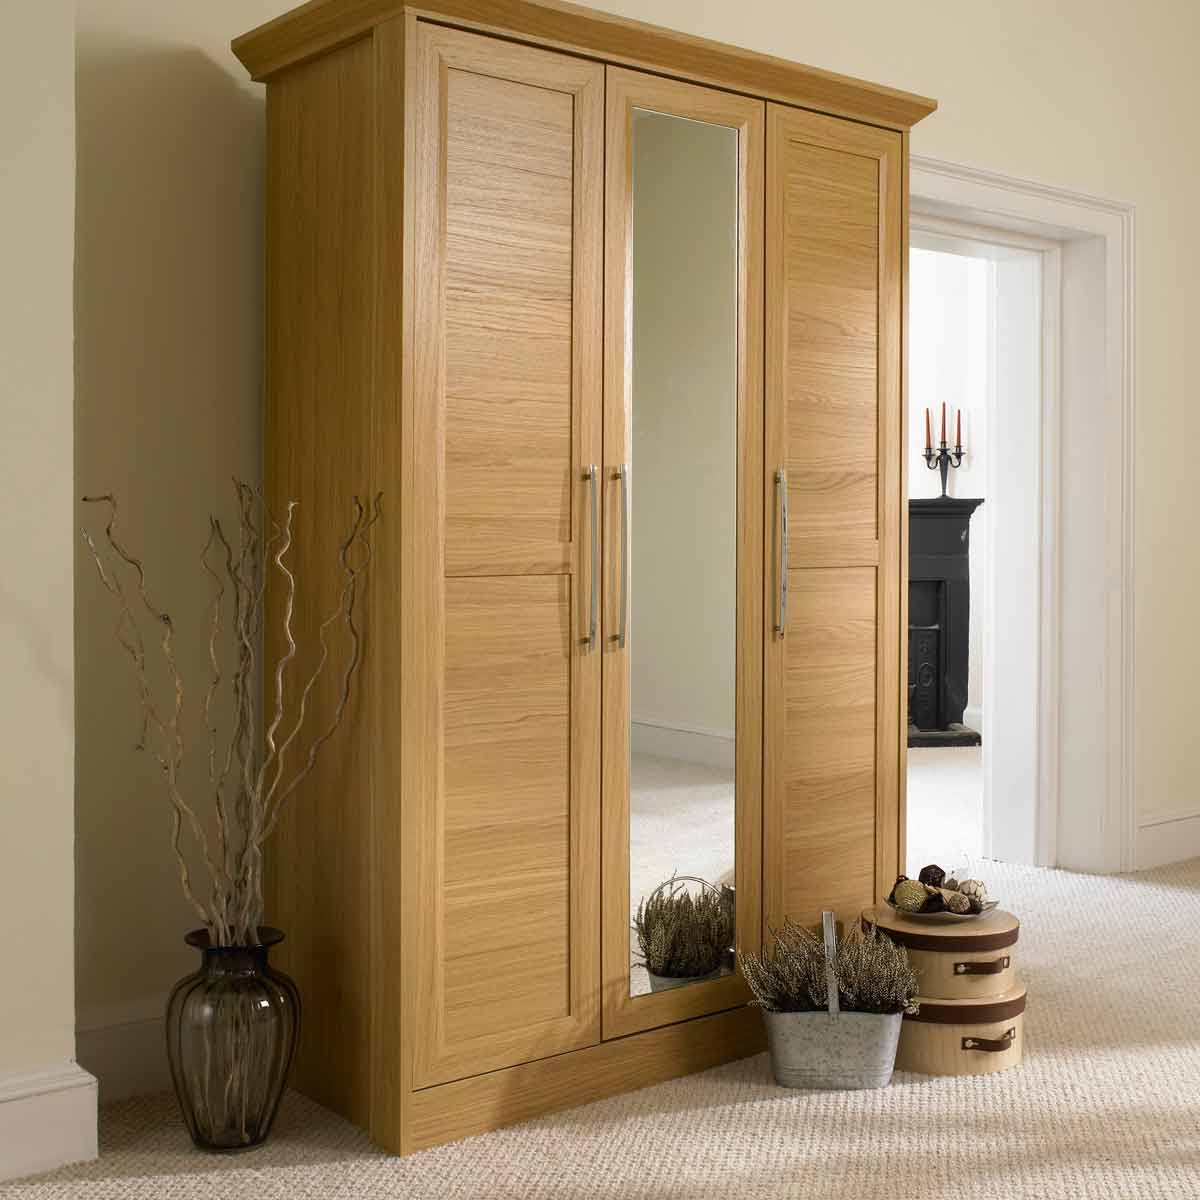 Bedroom Furniture Modern Wooden Bedroom Armoire Mirror Door Intended For Large Wooden Wardrobes (Image 5 of 25)